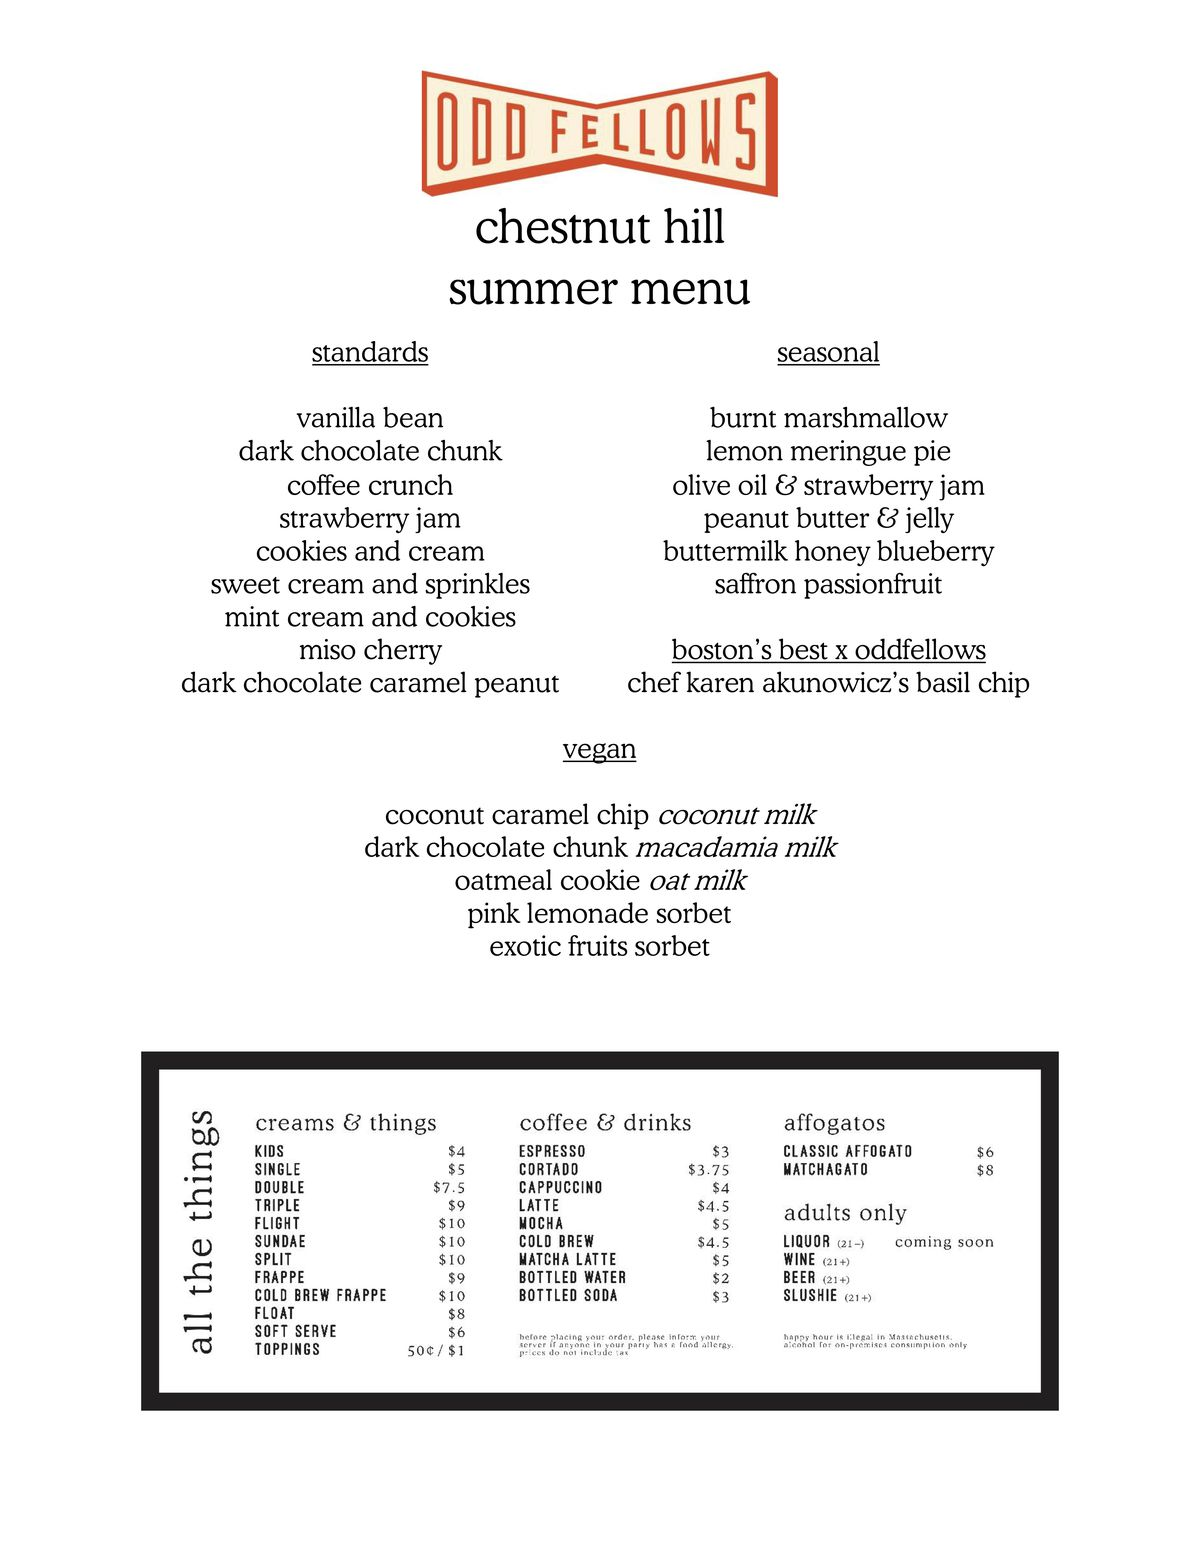 The opening menu for Oddfellows Ice Cream in Chestnut Hill